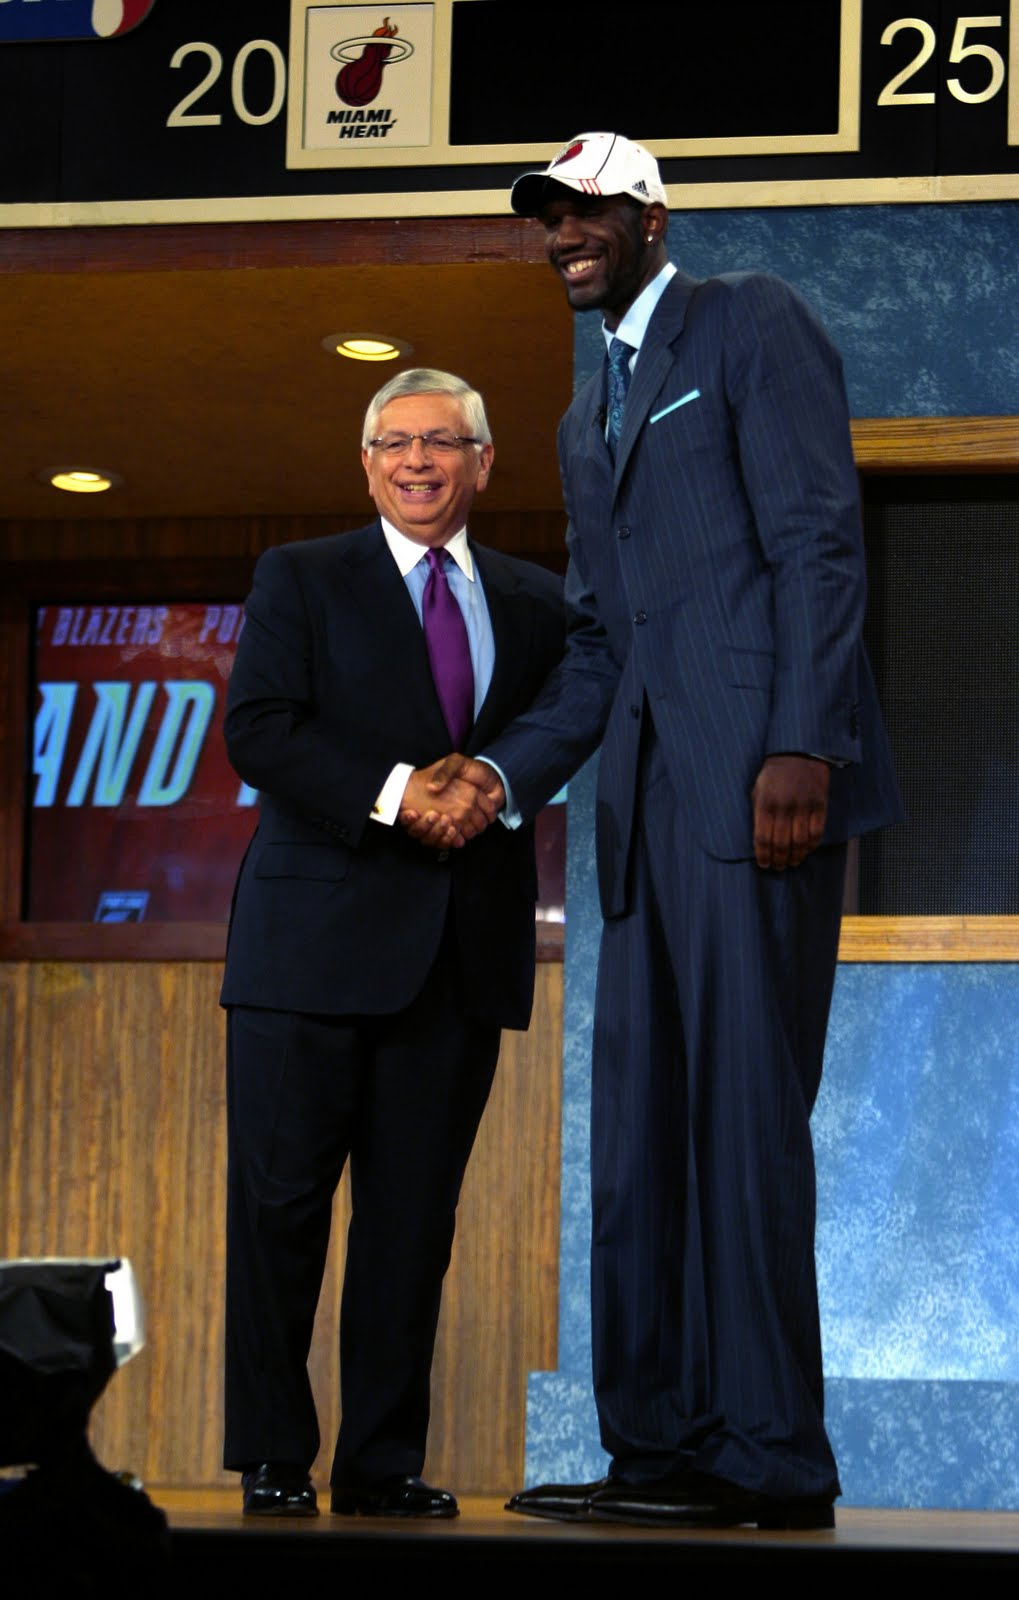 kyrie irving height without shoes | Peninsula Conflict ...Kyrie Irving Height